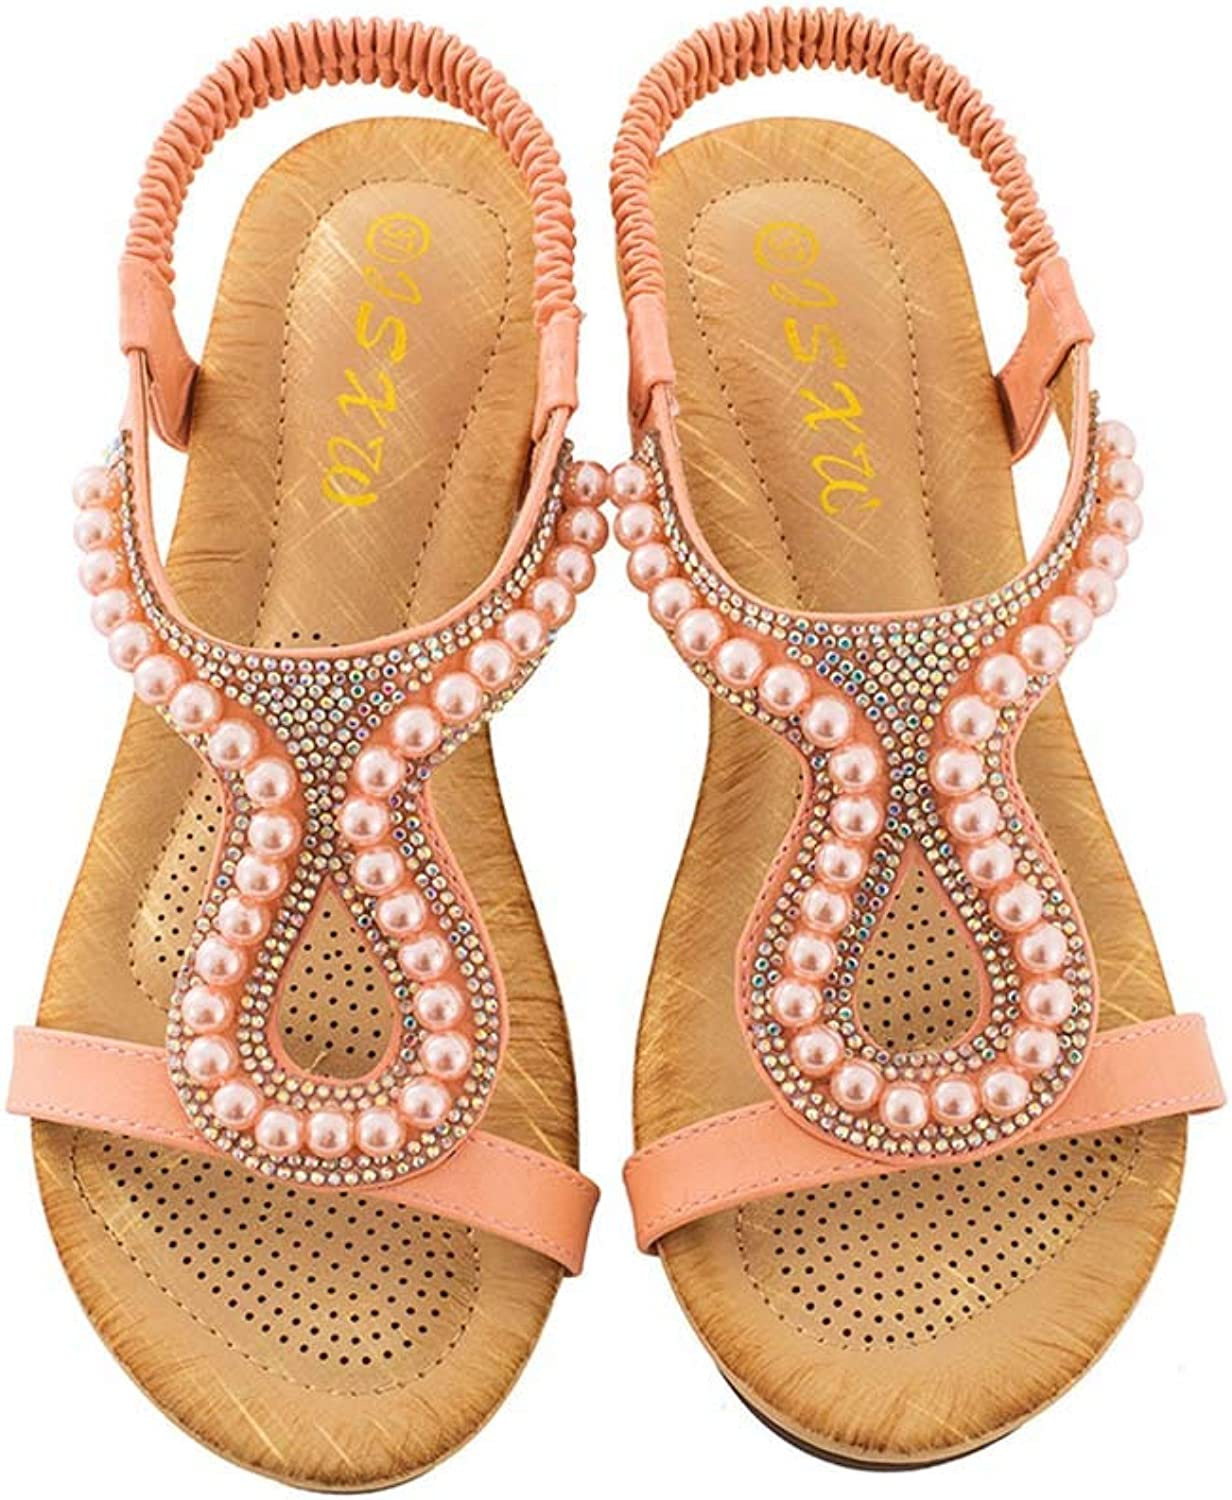 Women's Wedge Sandals Drill Beads Ornaments Sandals Open Toe PU Casual shoes Summer New